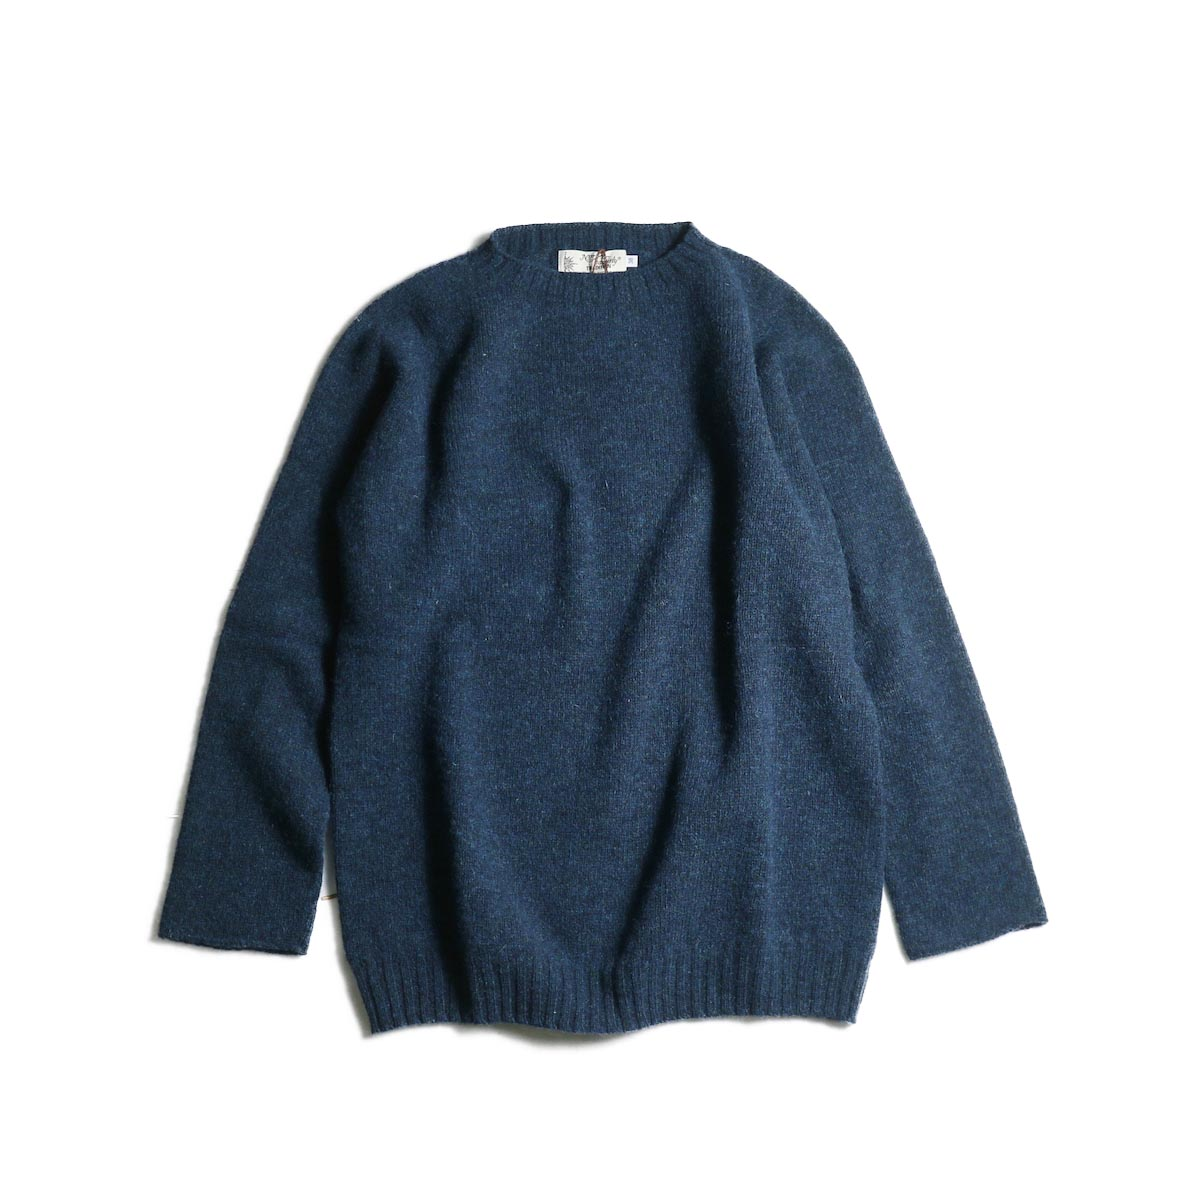 NOR'EASTERLY / L/S Crew Neck Knit (Petrel)